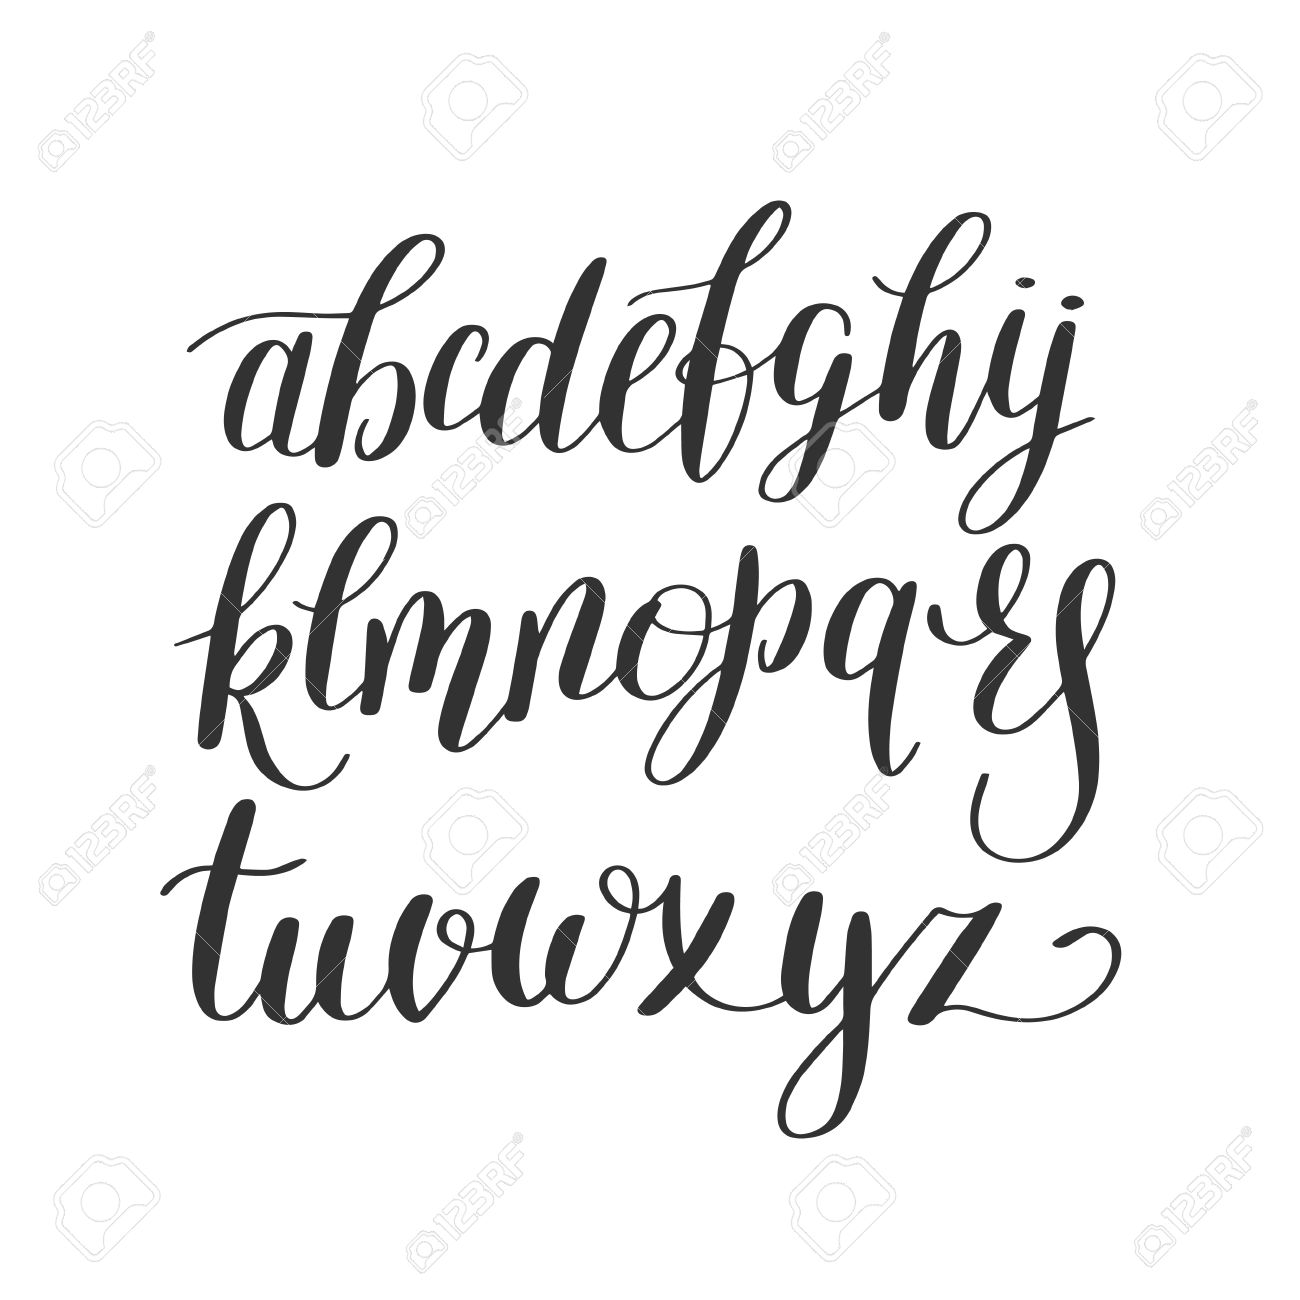 Black And White Hand Lettering Alphabet Design Handwritten Brush Script Modern Calligraphy Cursive Font Illustration